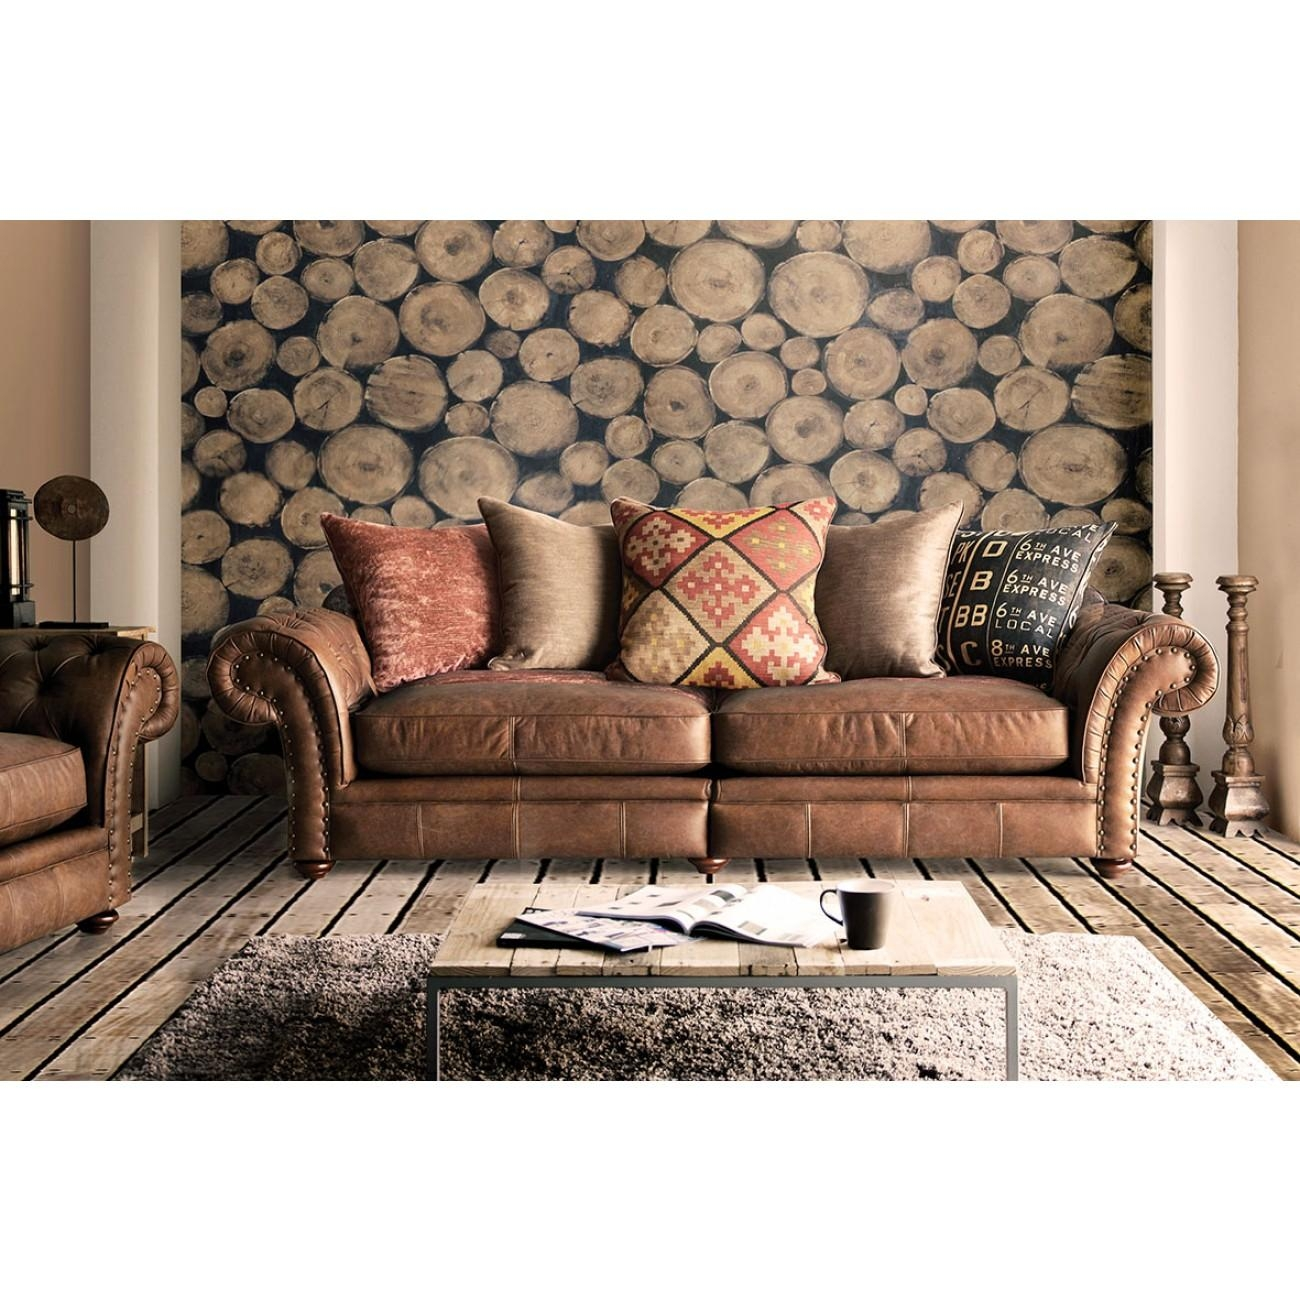 Featured Image of Leather And Material Sofas